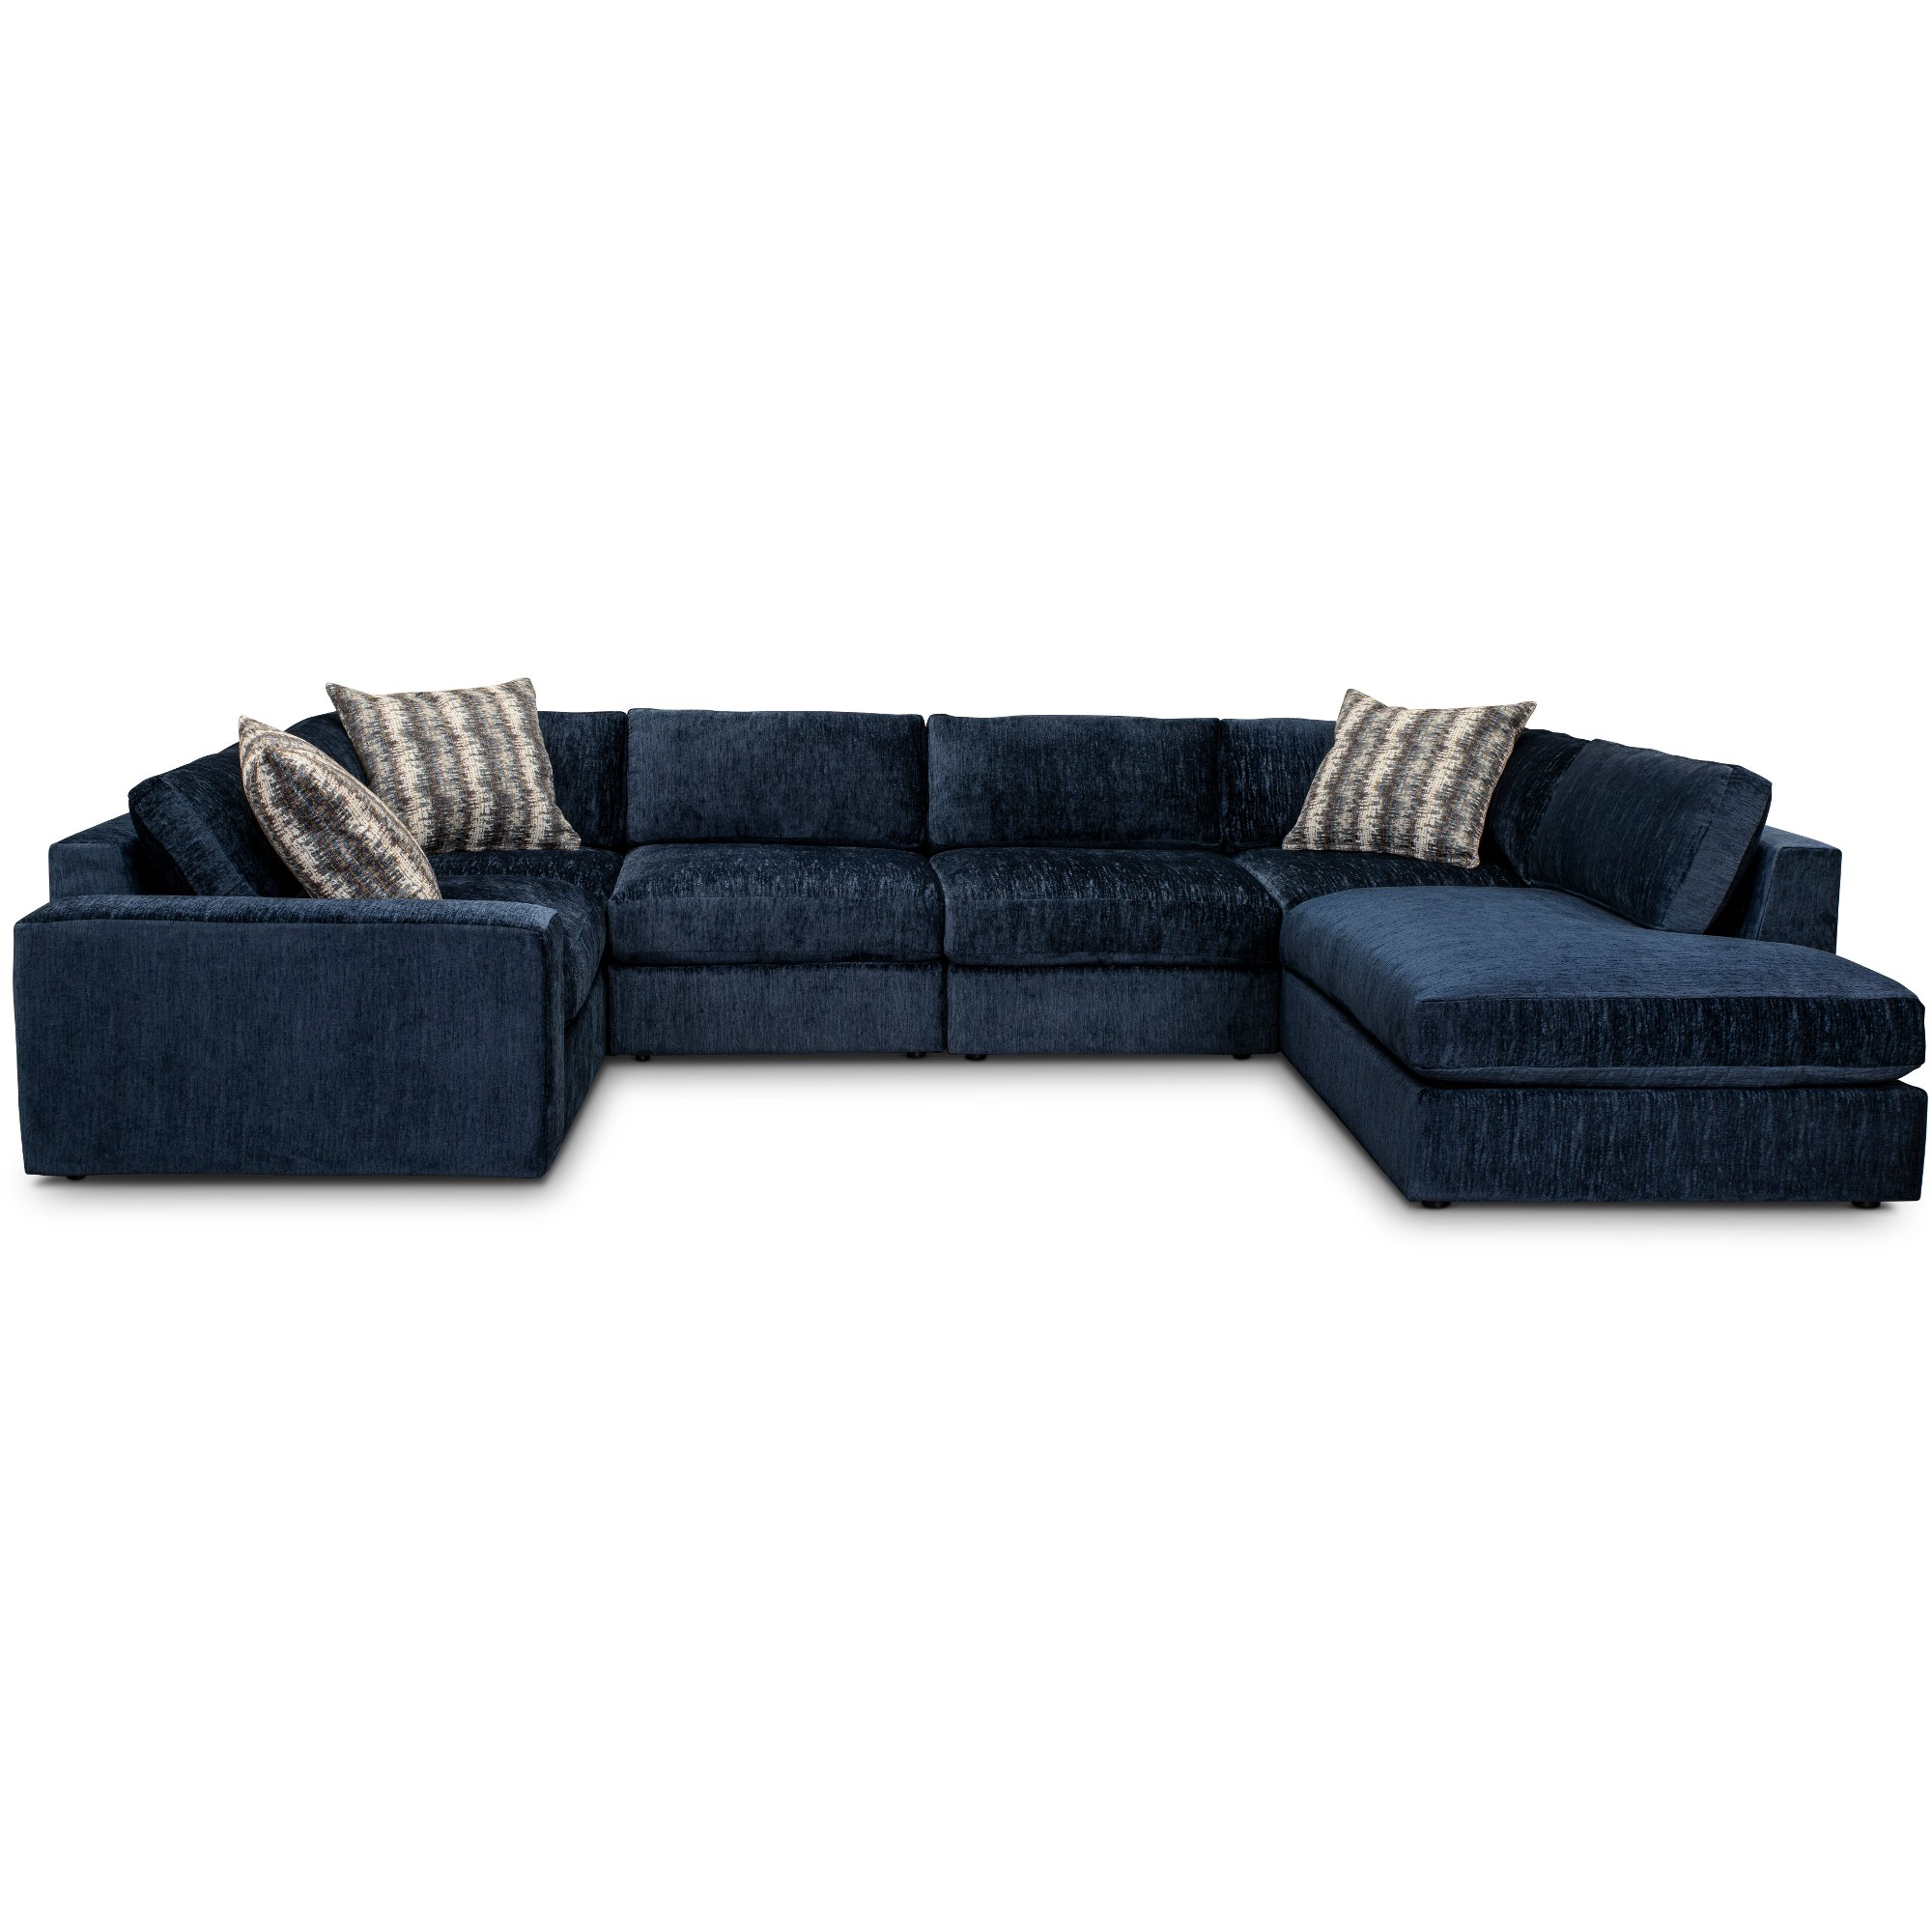 6 Piece Sectional Sofa With Raf Chaise